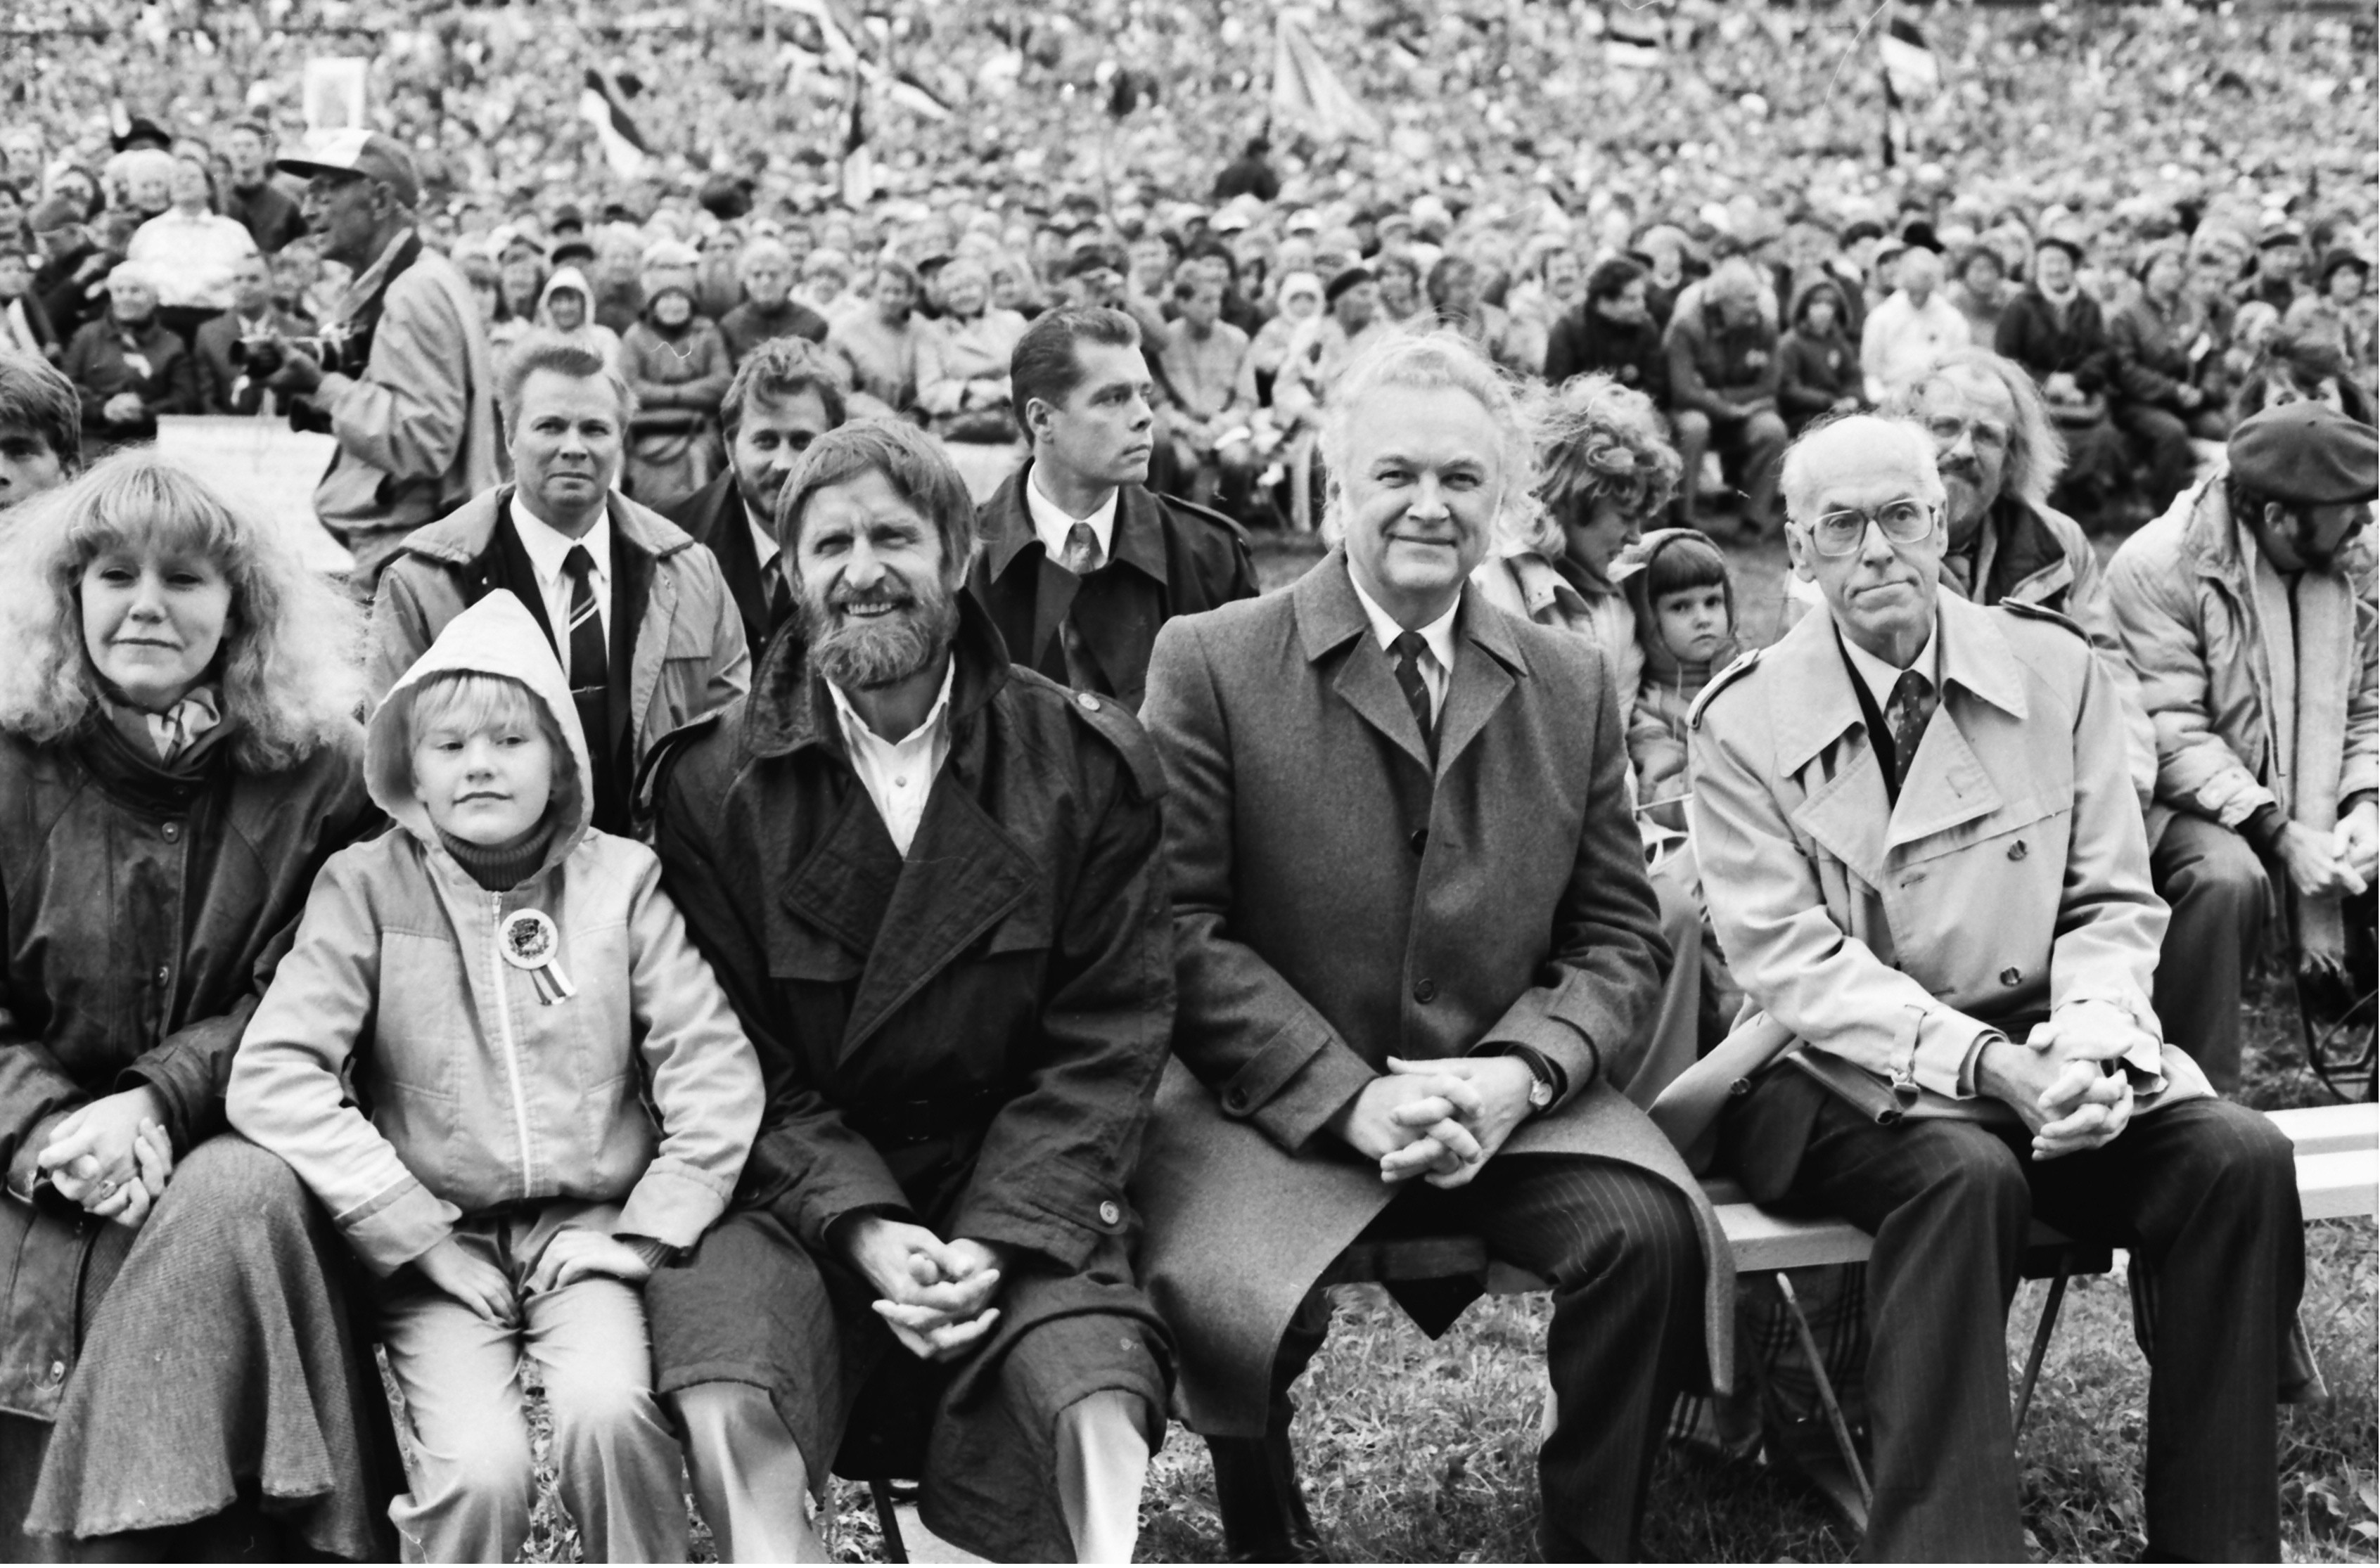 At the Song of Liberty, a mass event held at the Tallinn Song Festival Grounds, the front row includes foreign minister Lennart Meri with the chairman of the Supreme Council, Arnold Rüütel, and the family of artist and then-politician Heinz Valk. Photo by Peeter Langovits, from the archive of the foreign ministry.